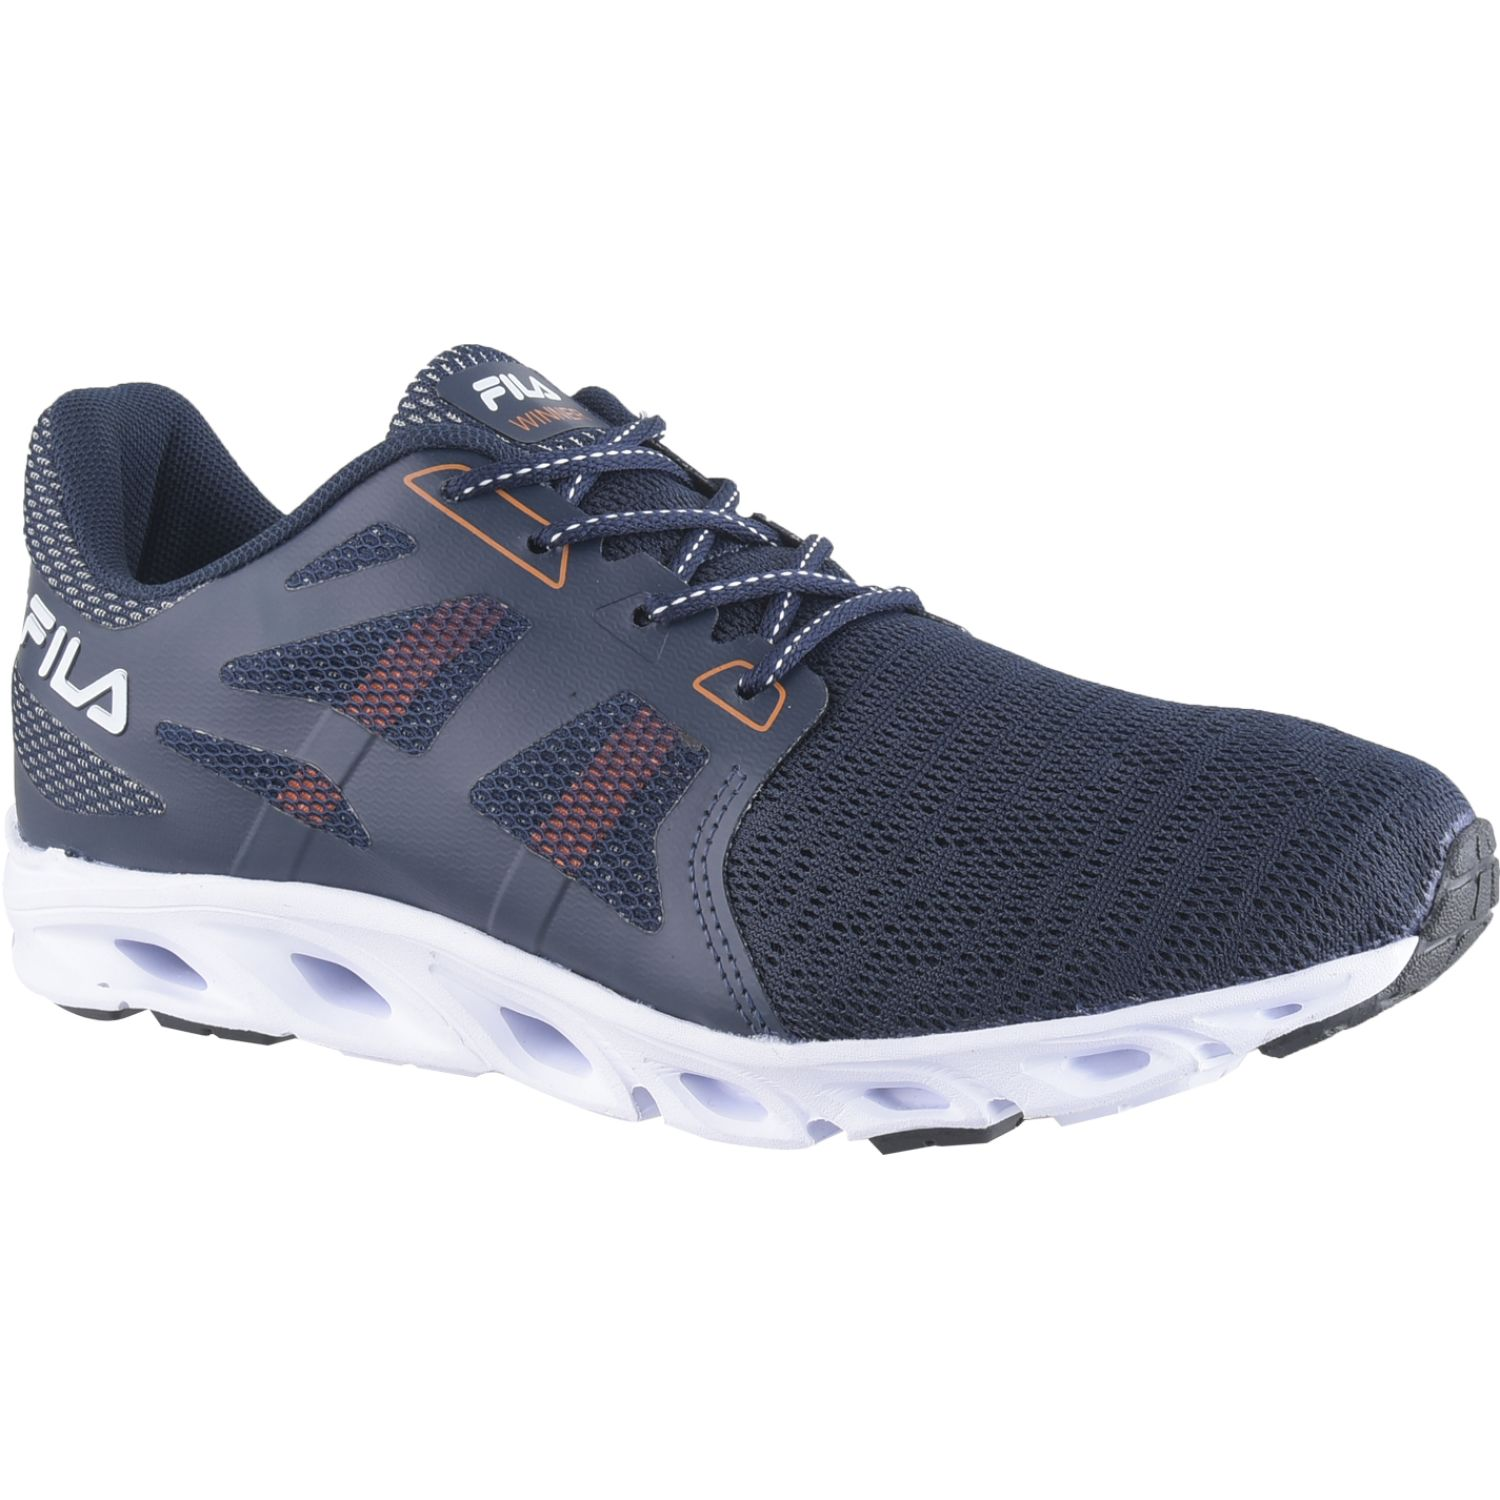 Fila tenis fila winner masculino Navy Walking